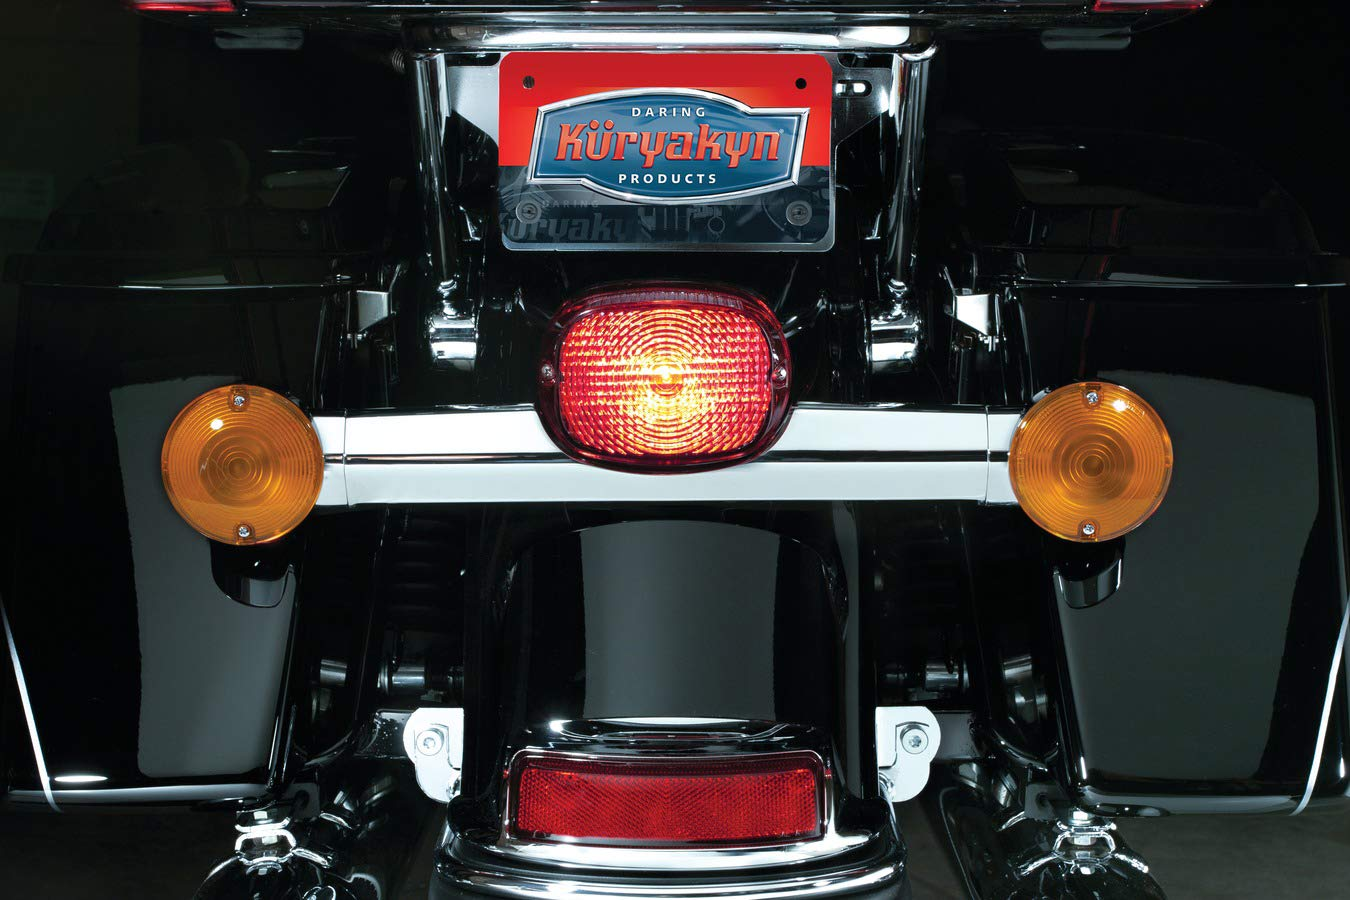 Kuryakyn 5422 Motorcycle Lighting: Deluxe Panacea LED Taillight with License Plate Illumination Light for 1994-2013 Harley-Davidson Motorcycles, Smoke Lens by Kuryakyn